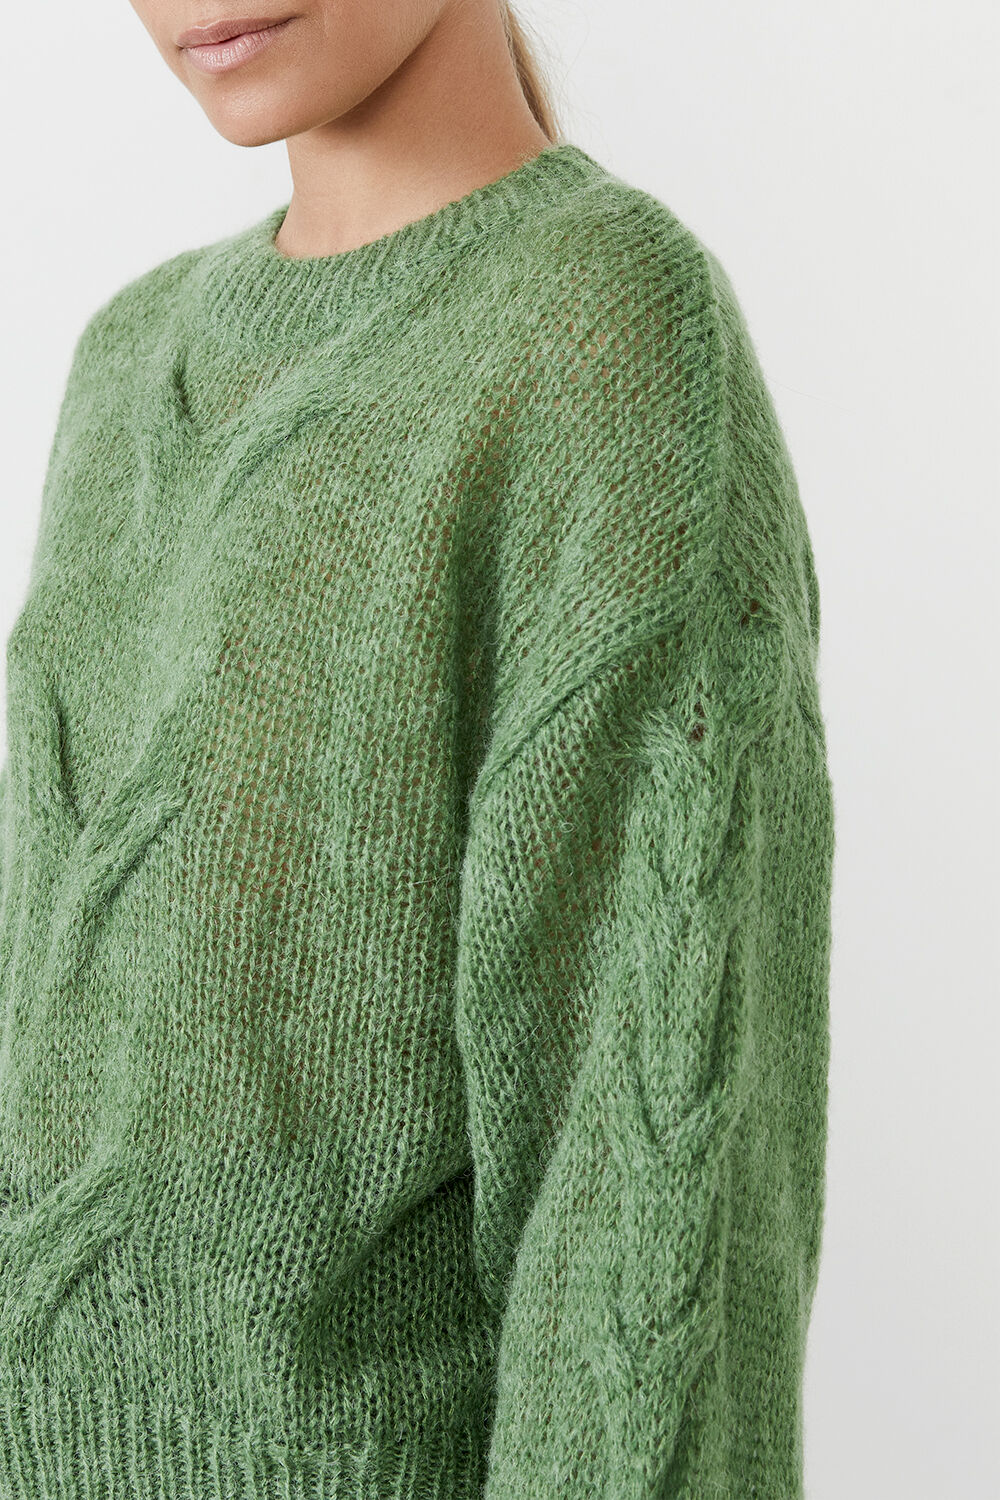 THE OVERSIZED CABLE KNIT in colour EVERGREEN